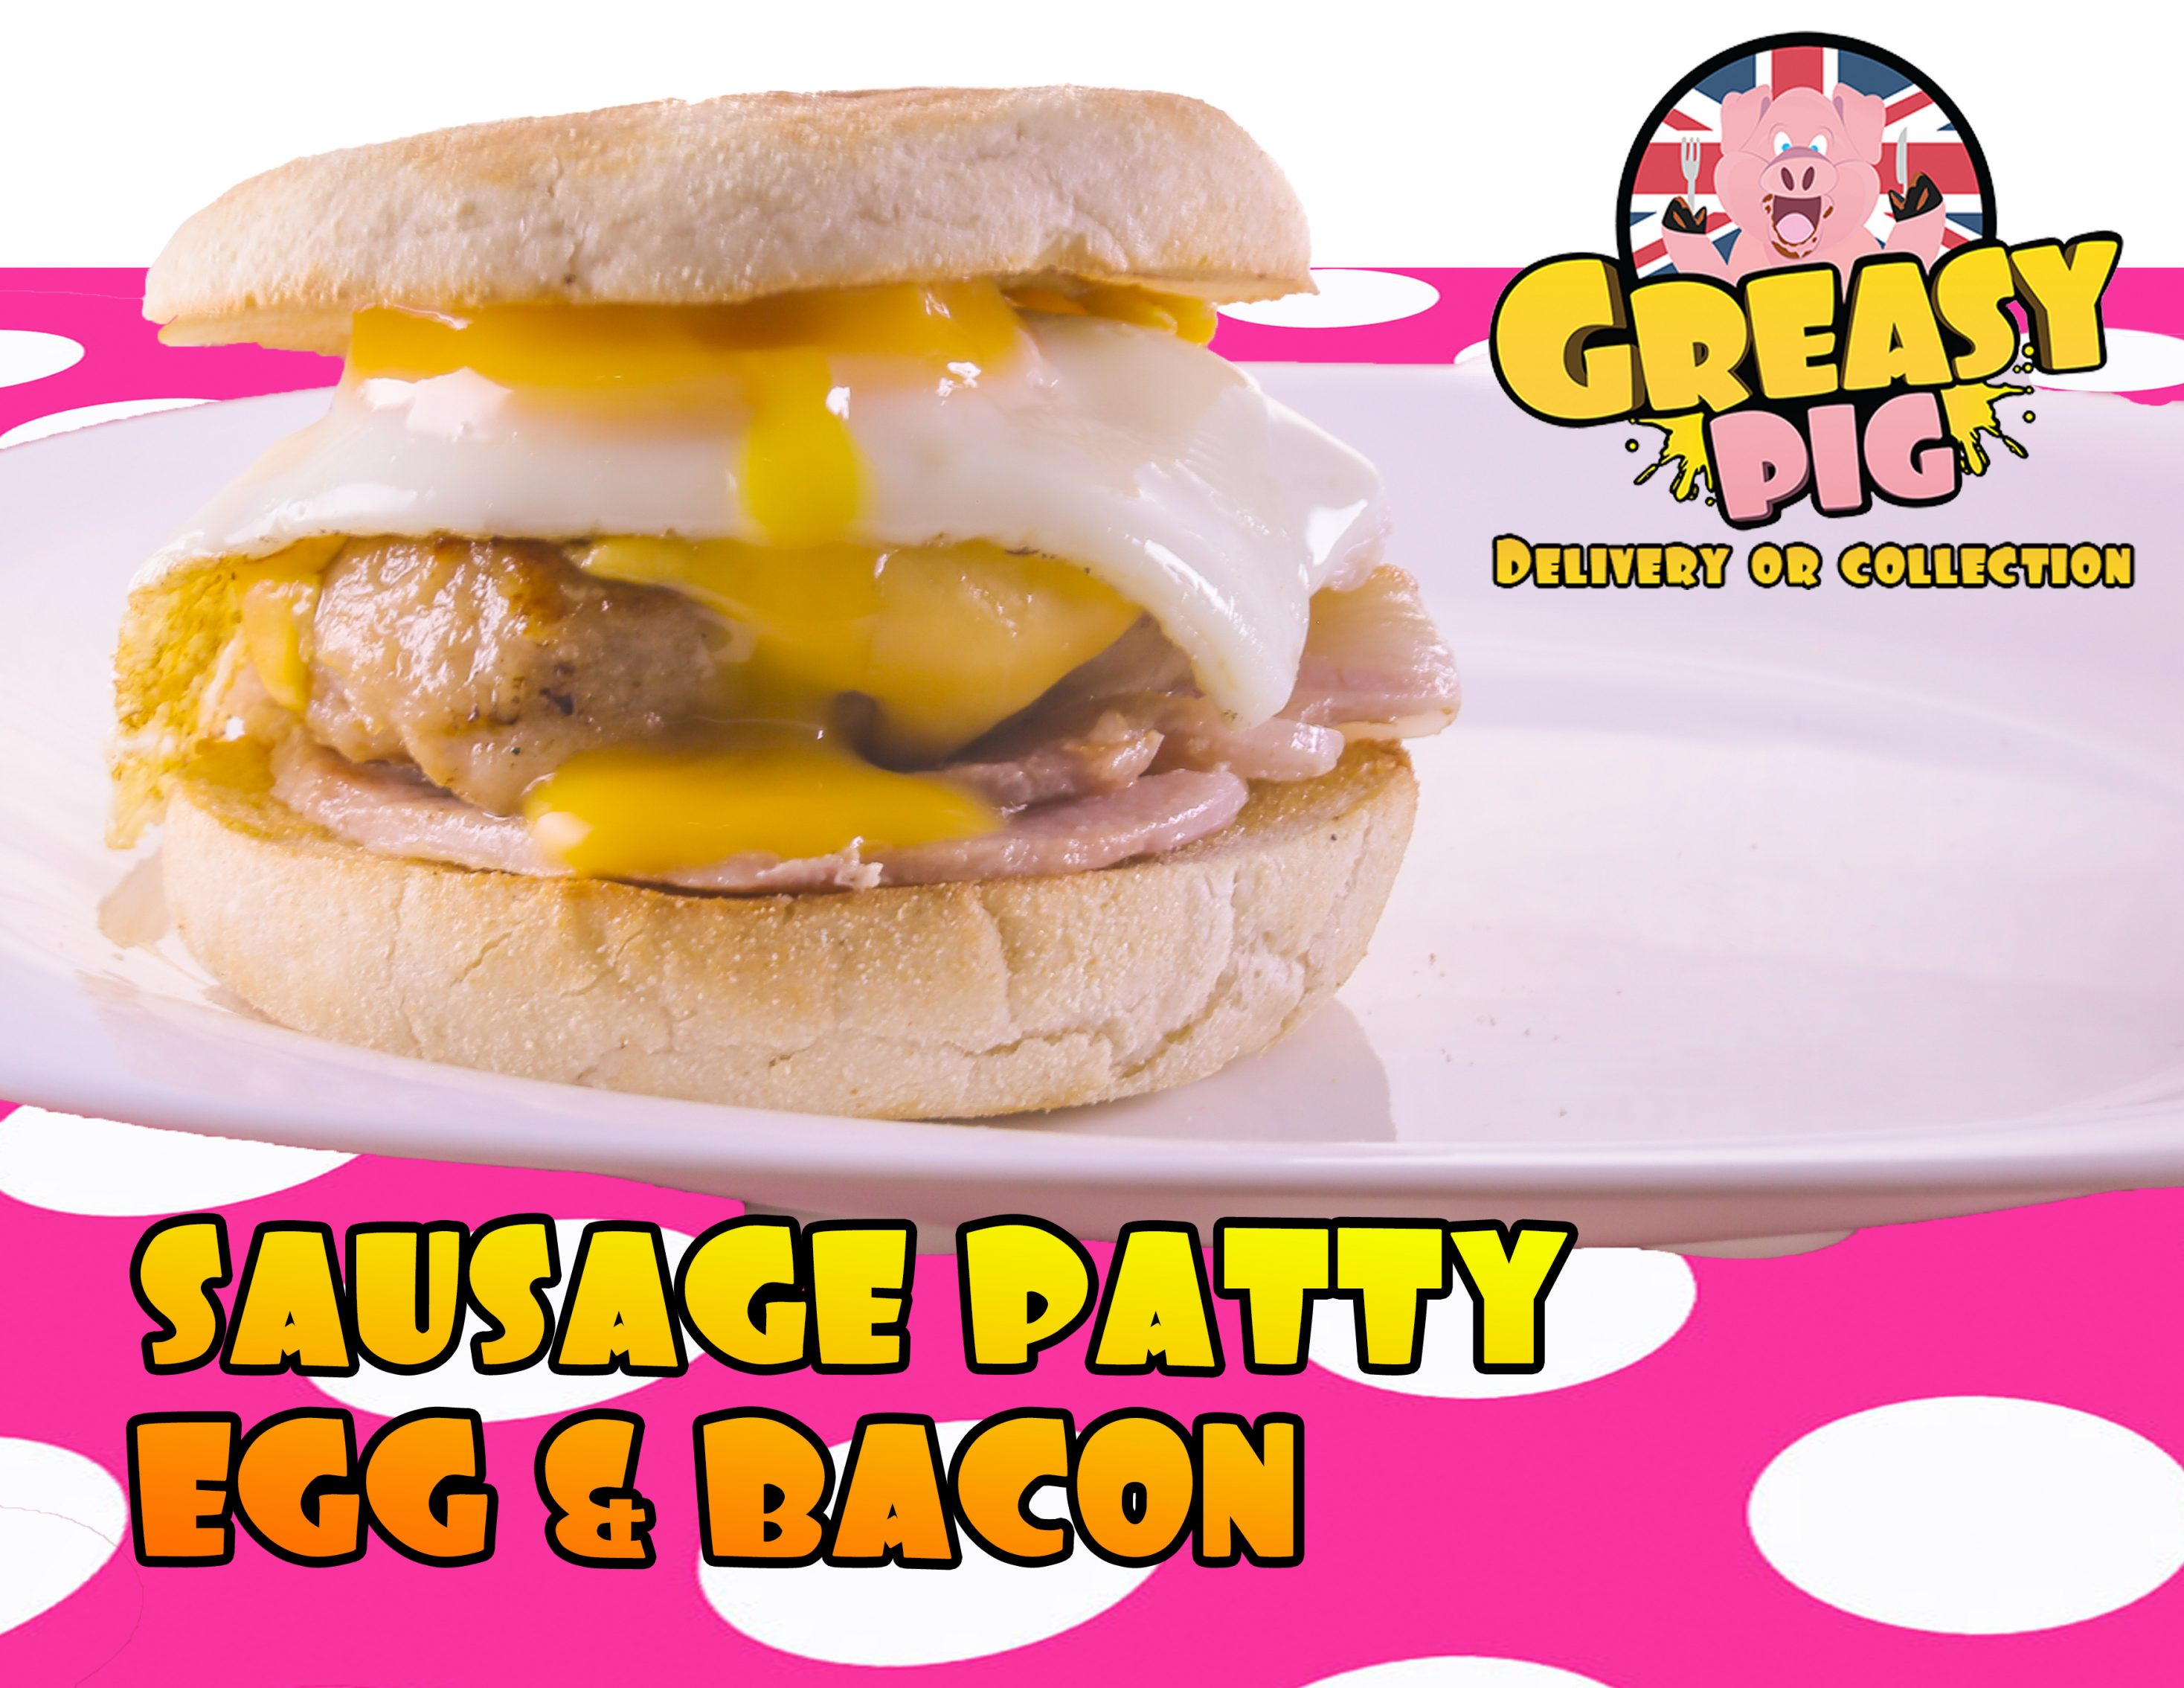 Sausage patty egg and bacon